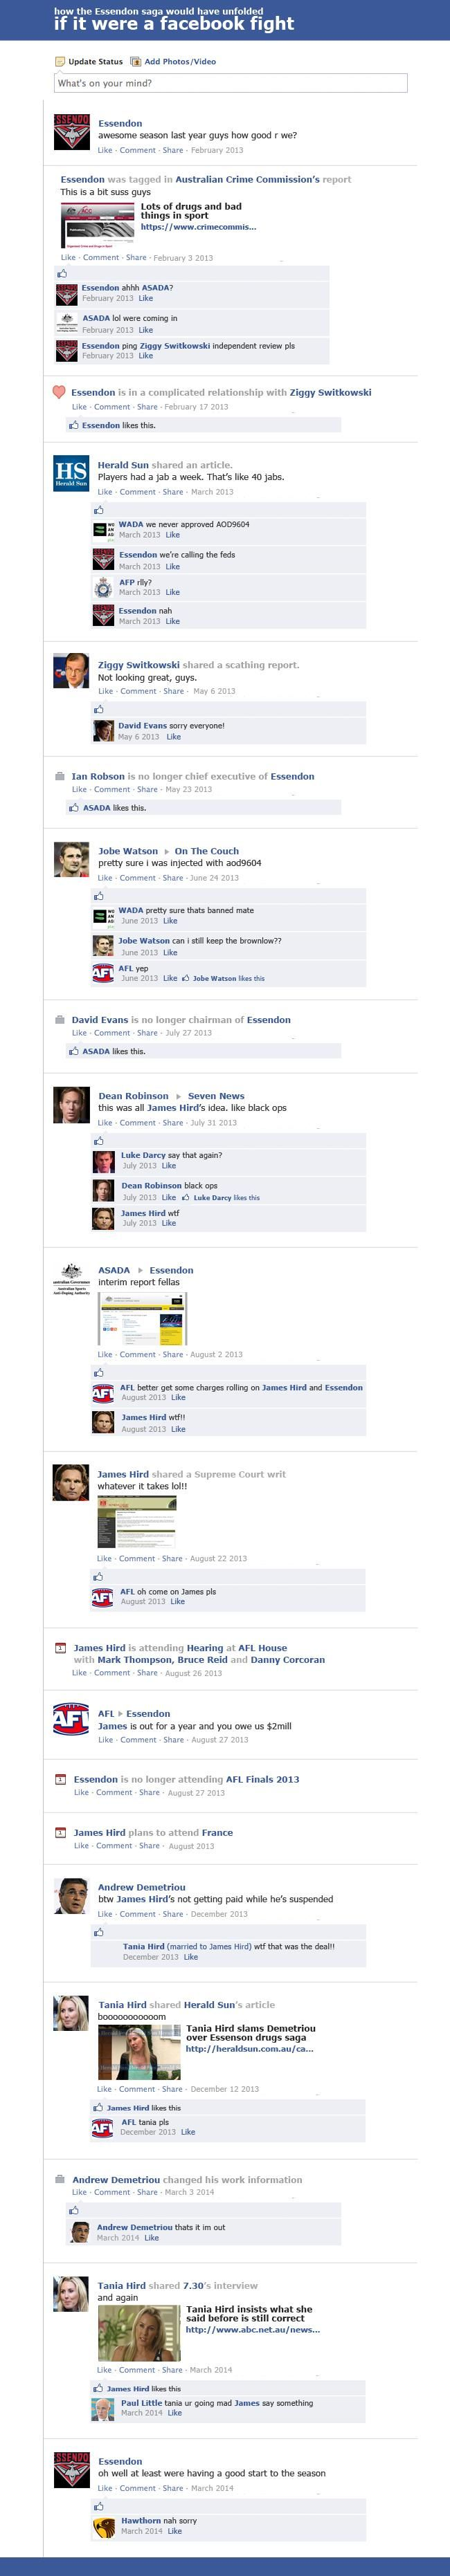 If Essendon & ASADA stoush played out on Facebook